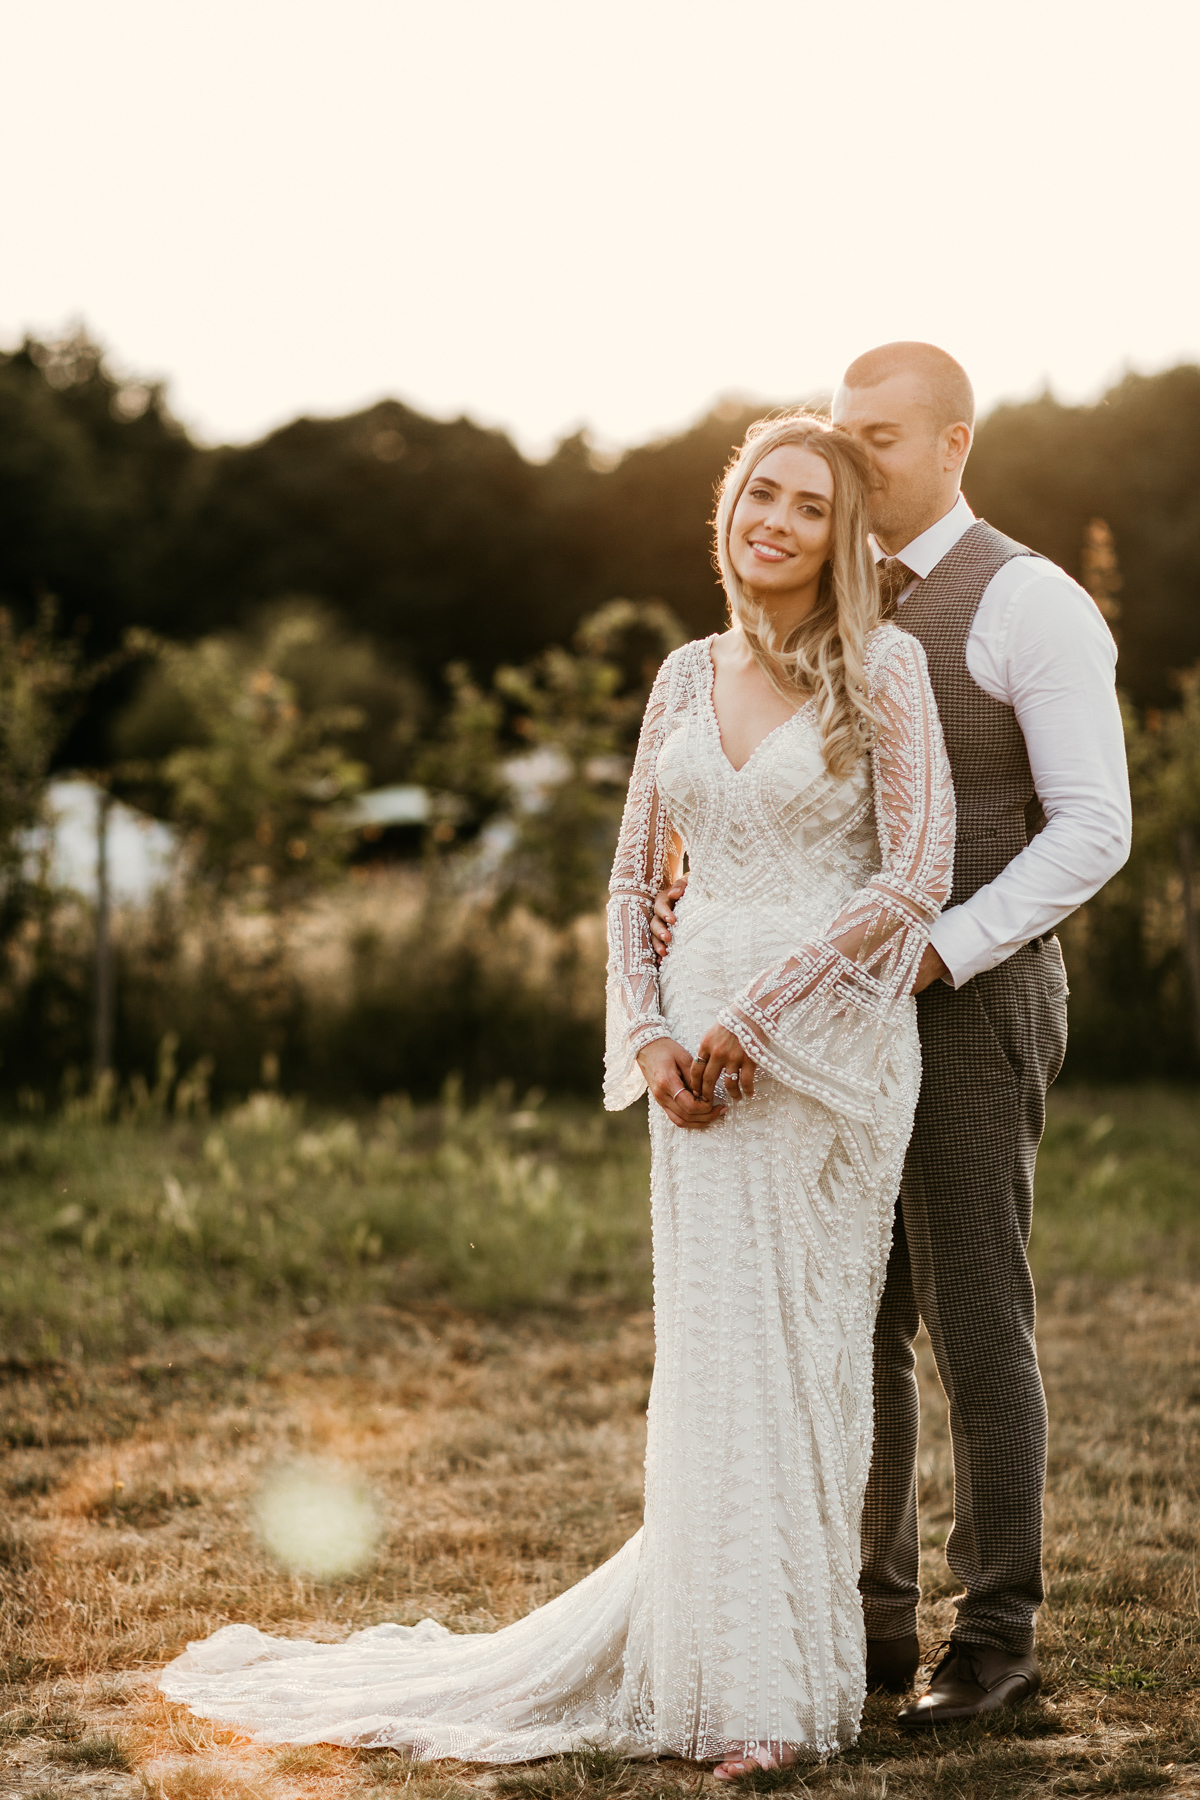 wedding portraits by preston court wedding venue by Canterbury wedding photographers during the festival style wedding at preston court wedding venue by Canterbury wedding photographers